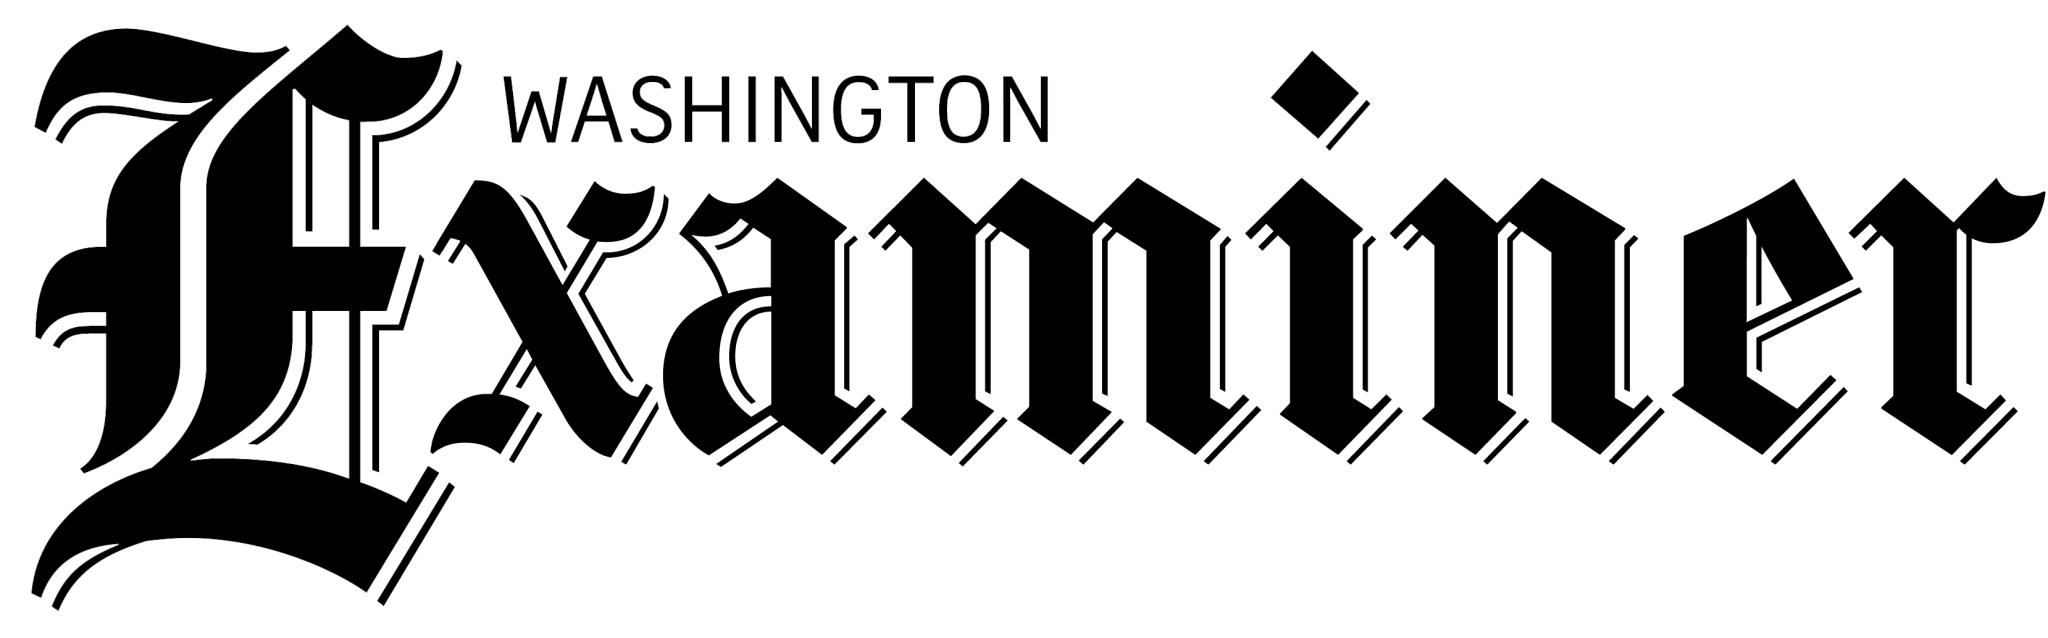 washington-examiner-logo